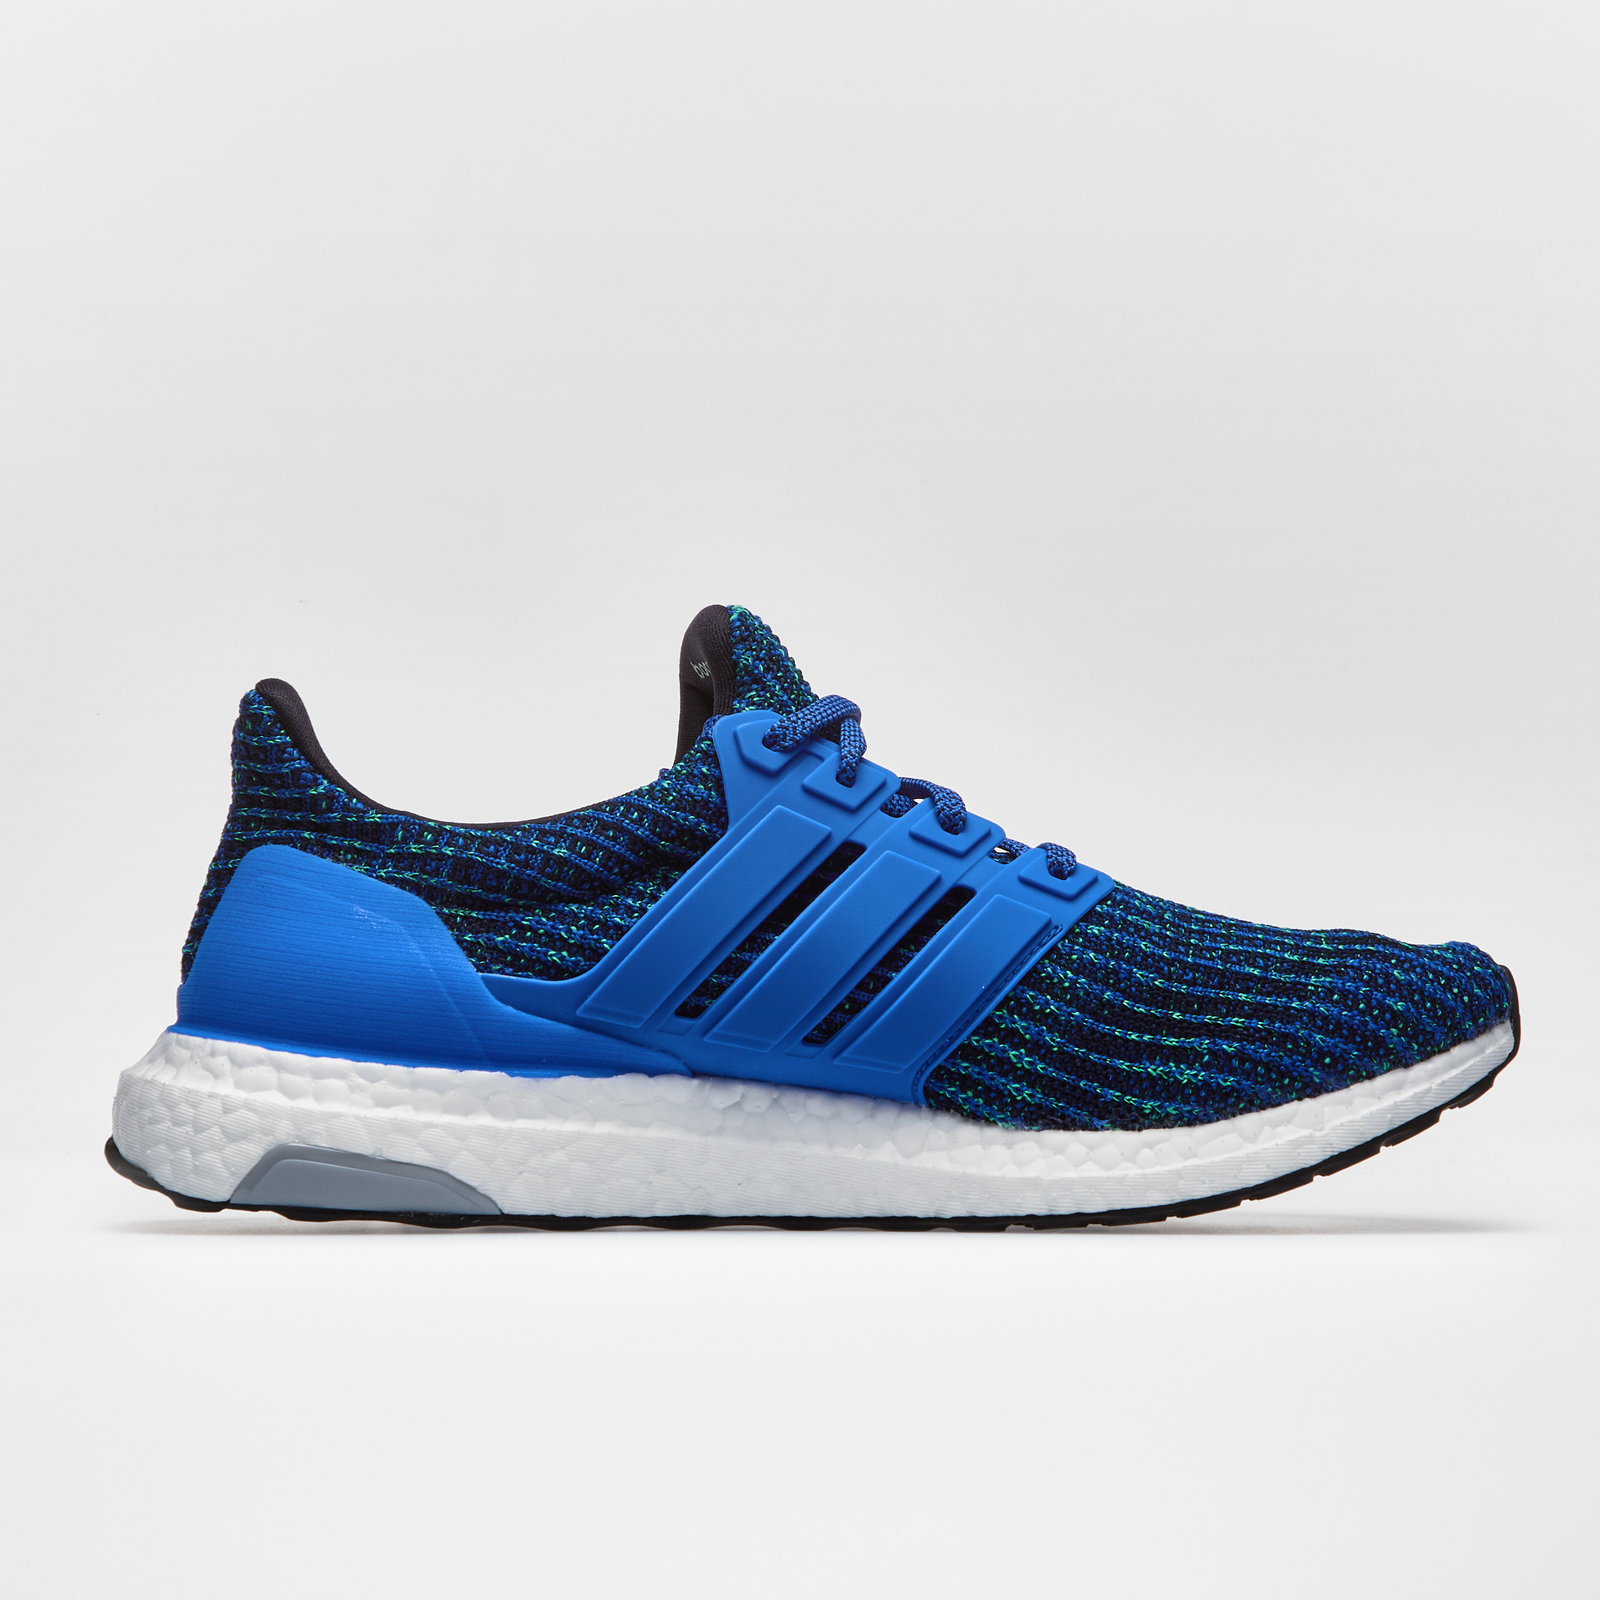 Adidas Mens Ultra Boost Running Shoes Jogging Footwear